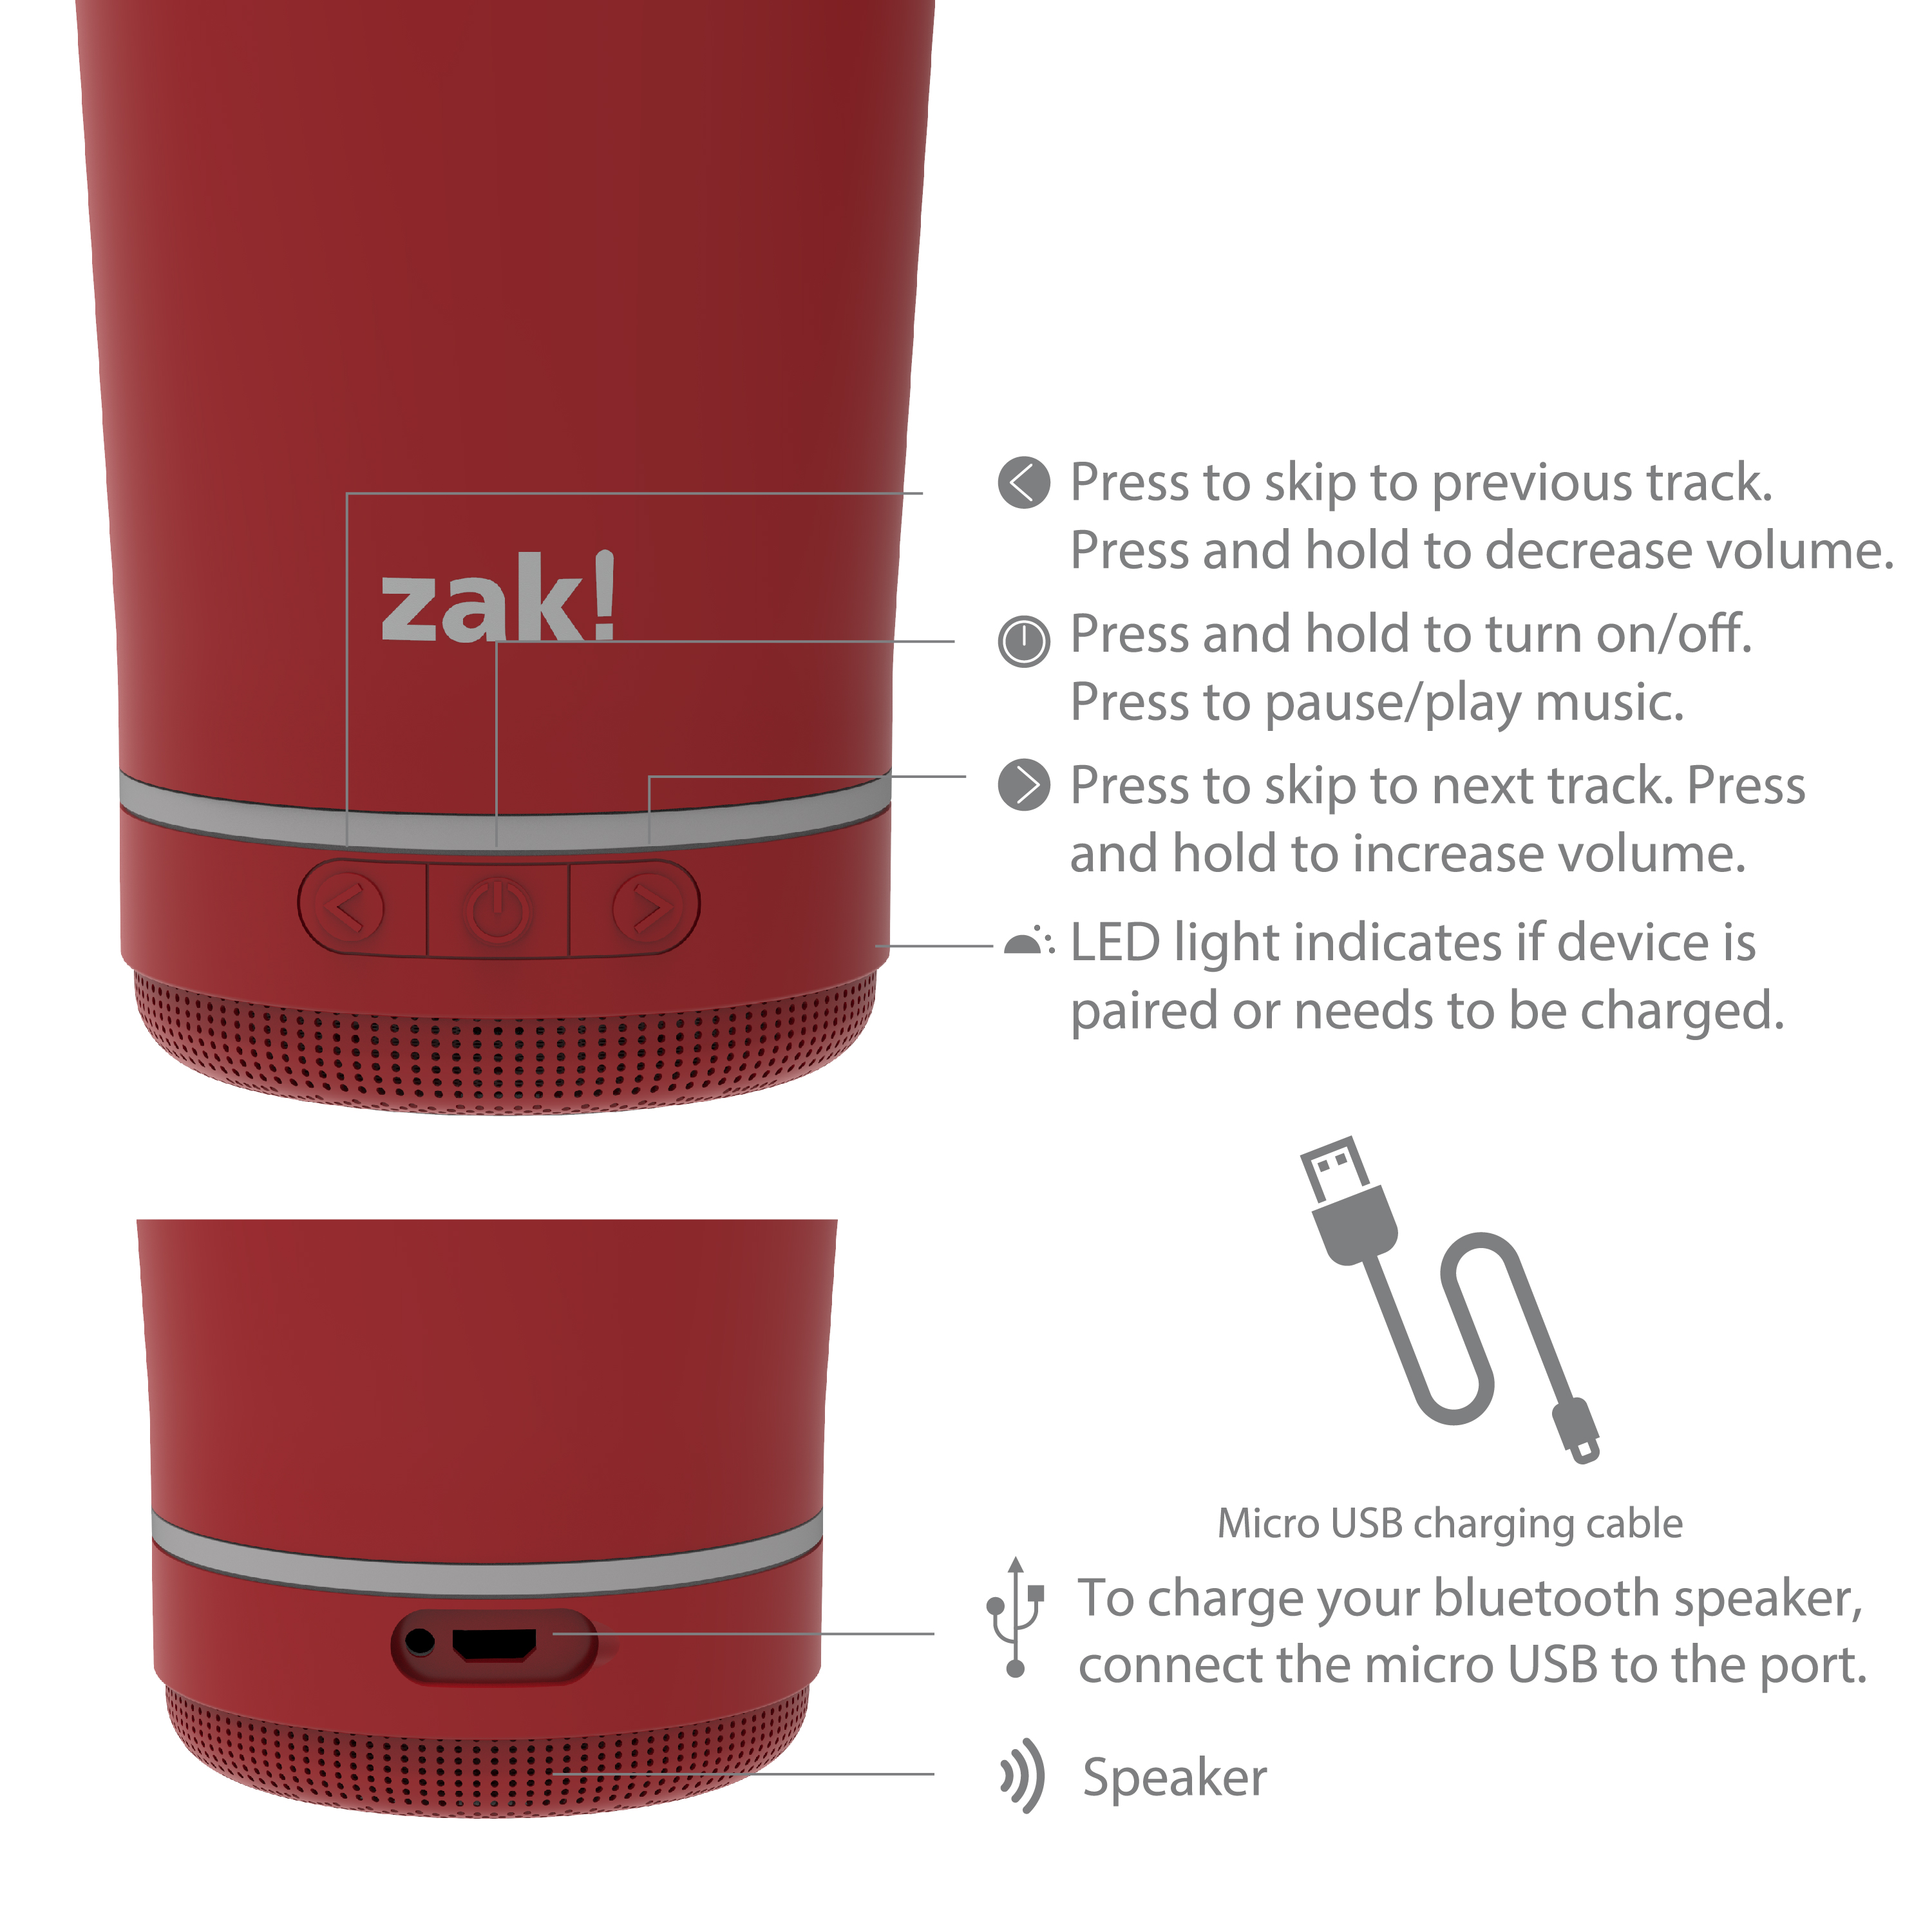 Zak Play 18 ounce Stainless Steel Tumbler with Bluetooth Speaker, Red slideshow image 9